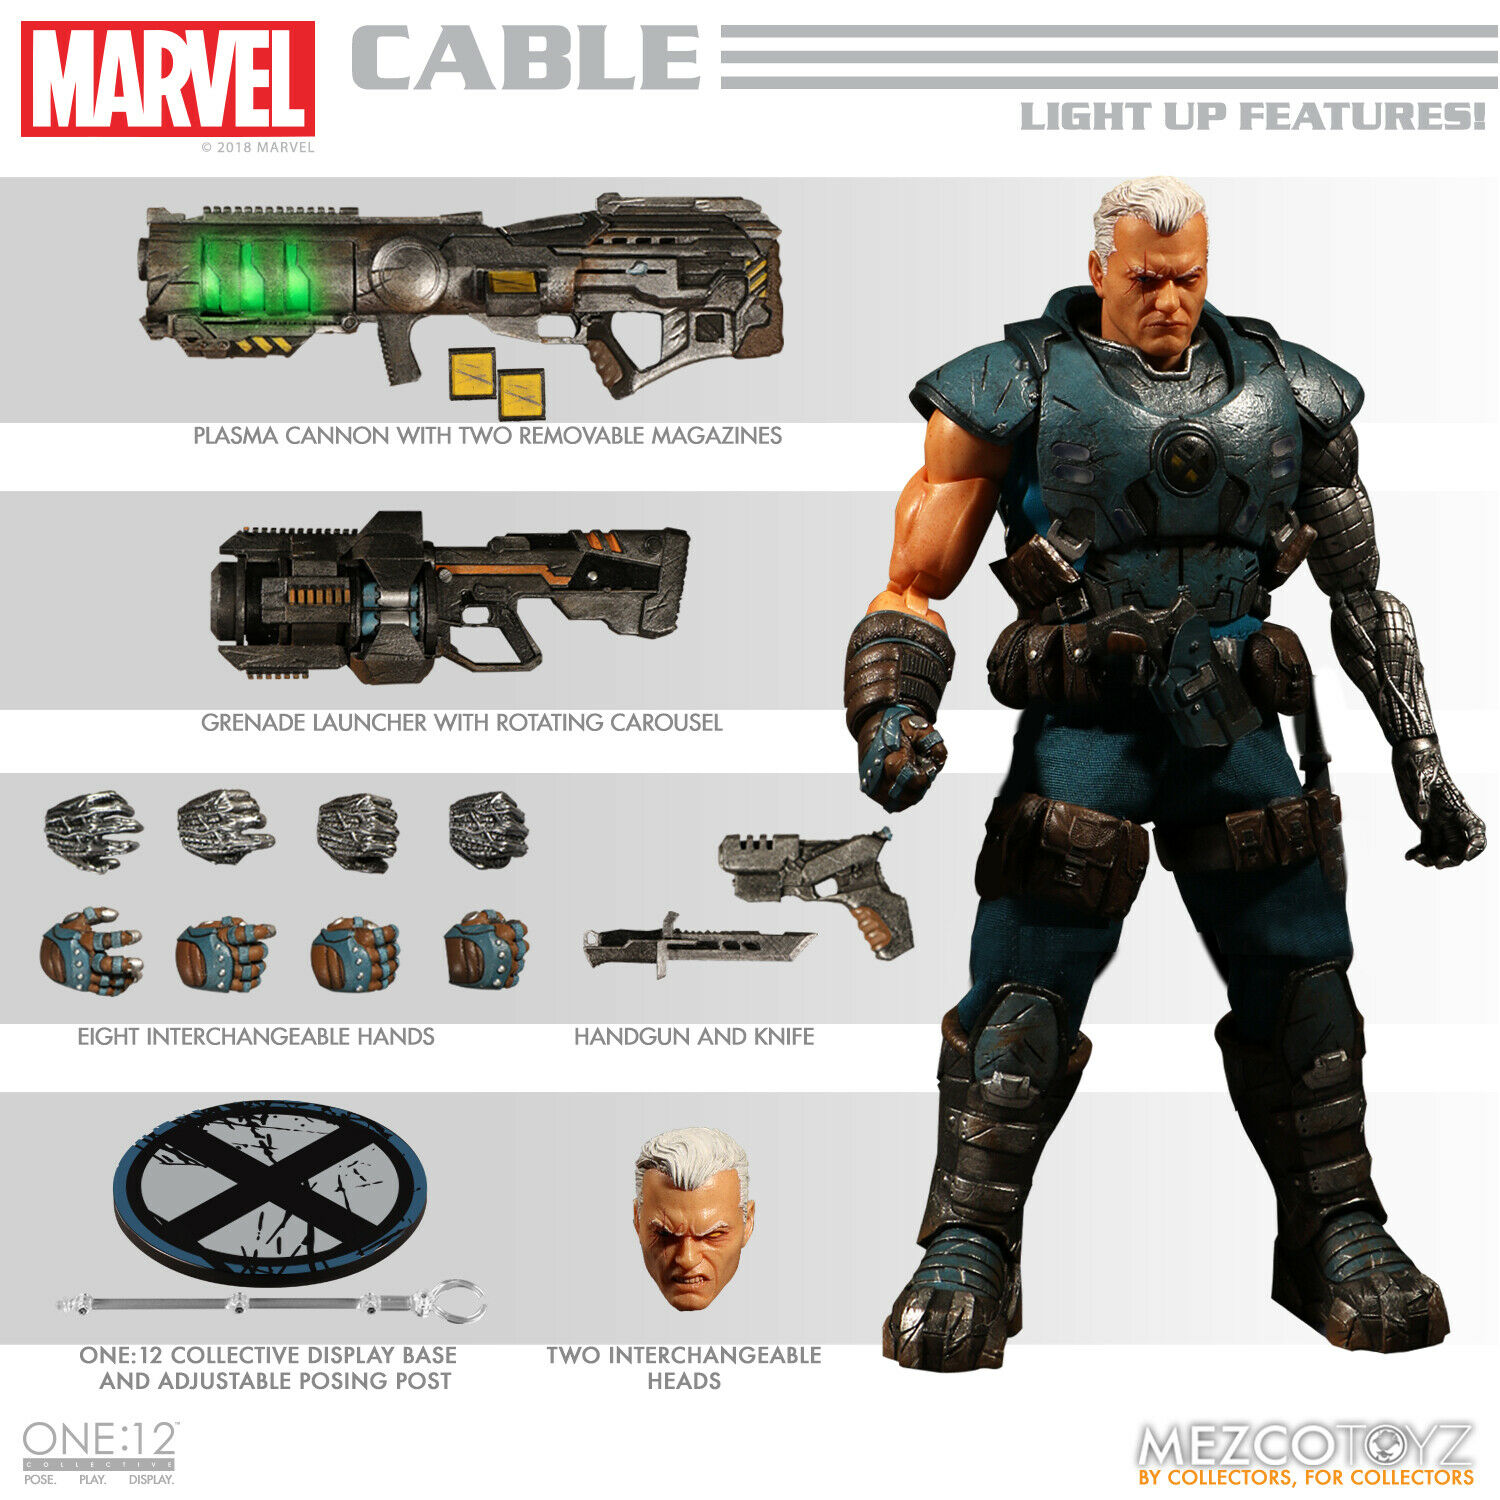 MEZCO One 12 Marvel Collective CABLE Action Figure MIB